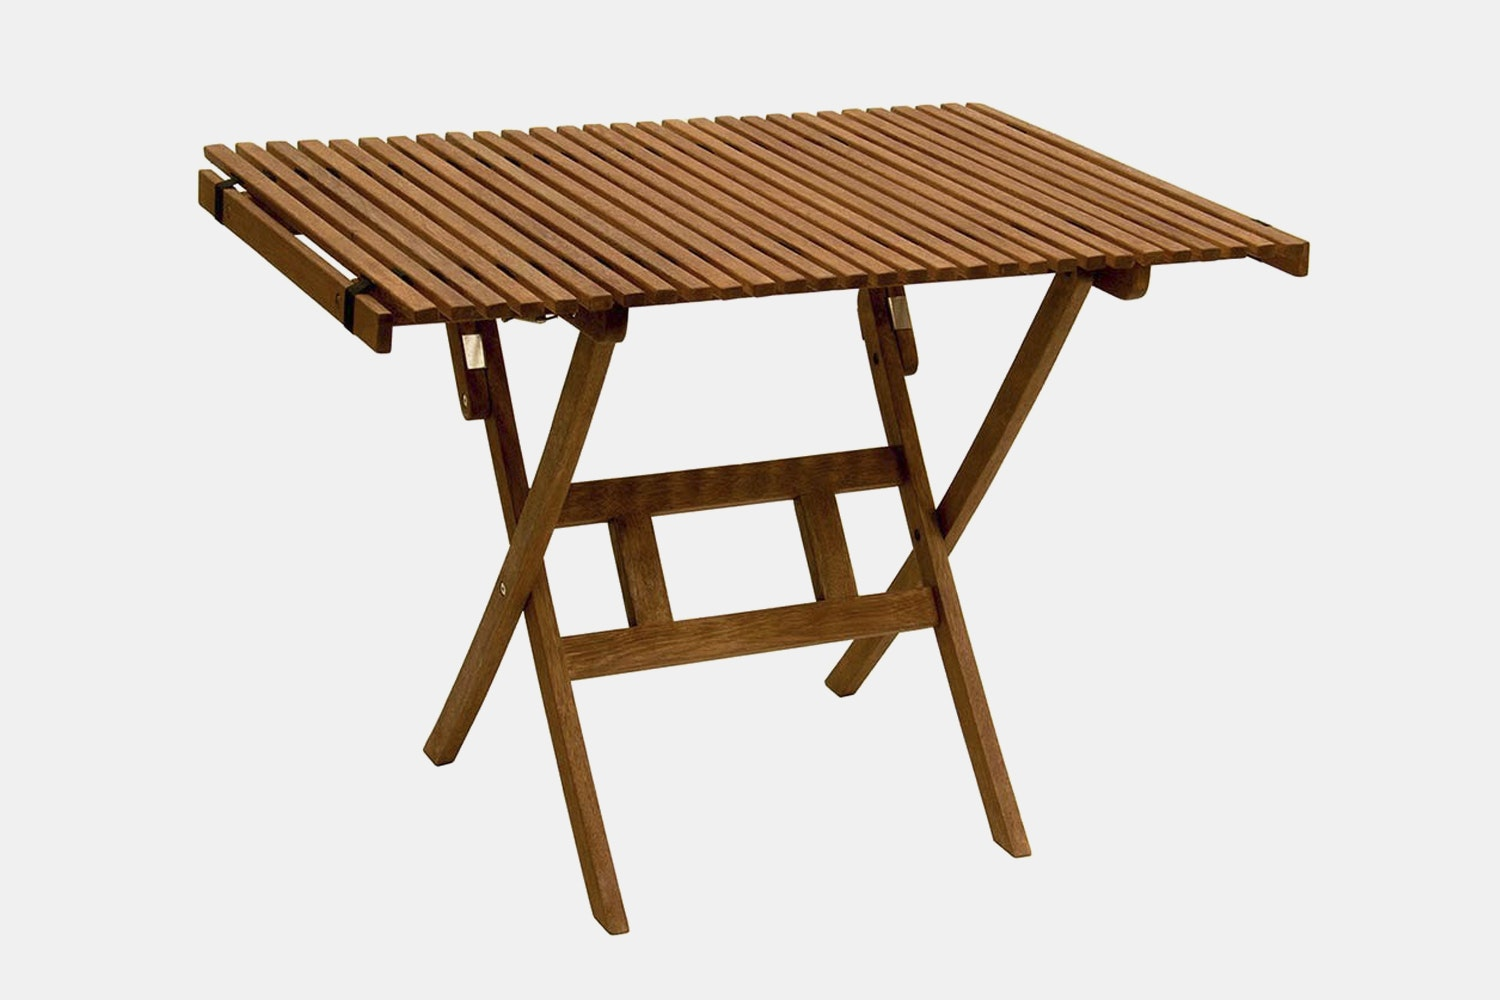 Campaign Roll Top Table (+ $75)